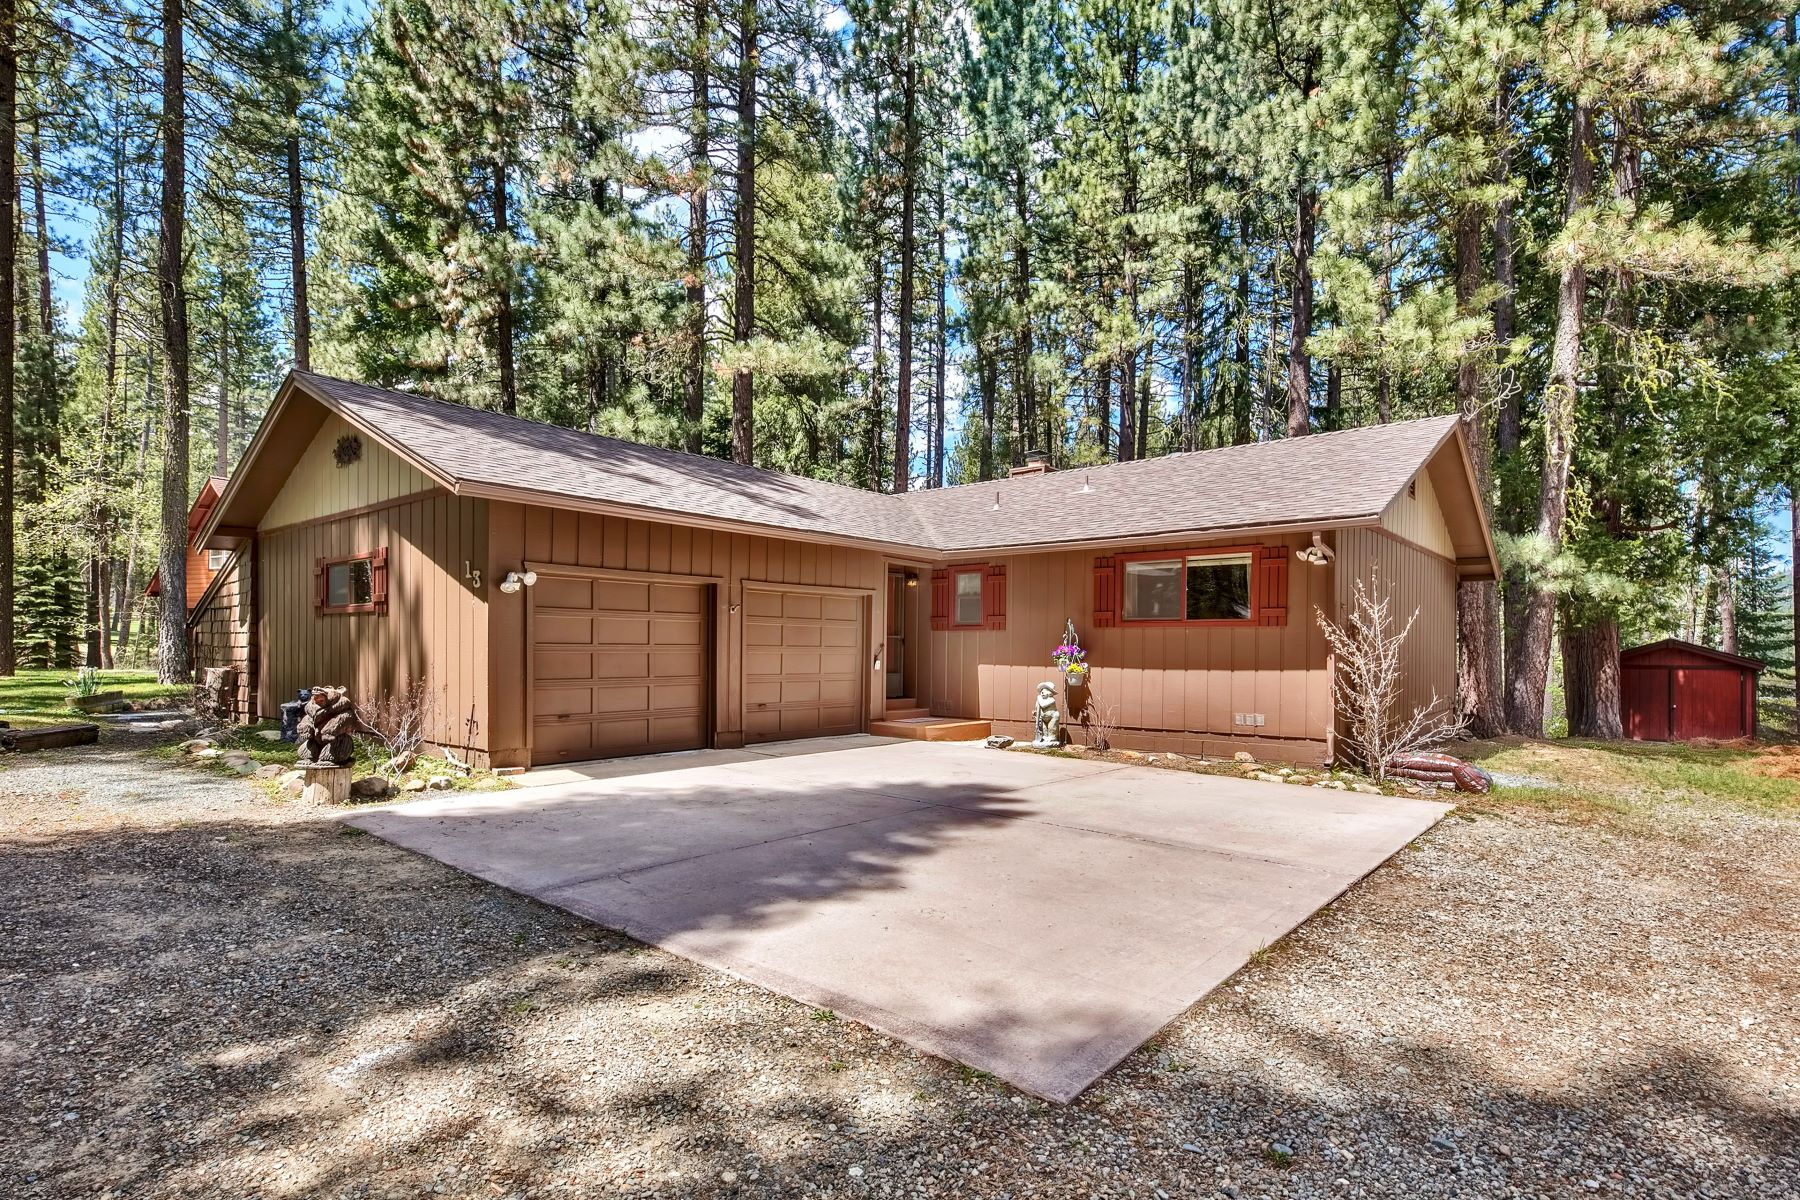 Single Family Homes for Active at Beautiful move-in ready home 13 Cedar Lane Blairsden, California 96103 United States